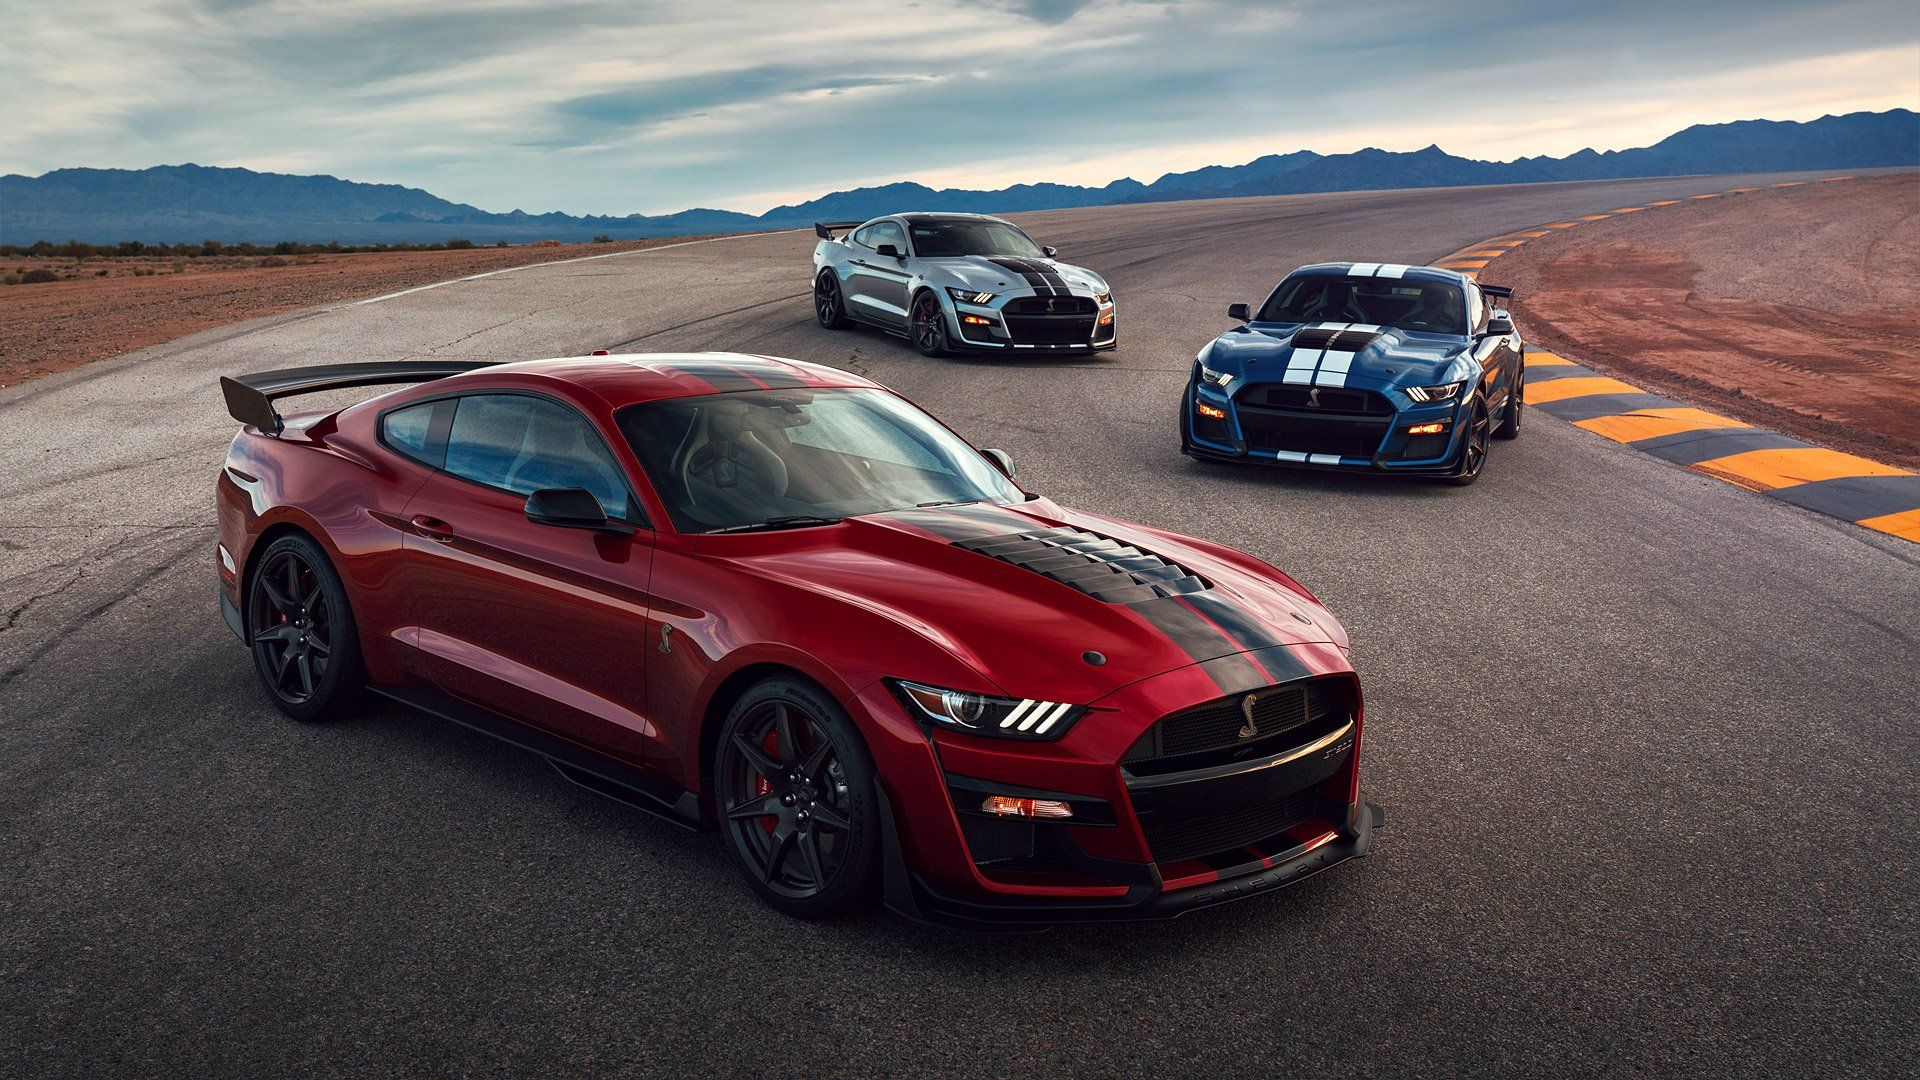 2020 Ford Mustang Shelby Gt500 1080p Check More At Https Www Evmore Net English 2020 Ford Mustang Shelby Ford Mustang Shelby Gt500 Shelby Gt500